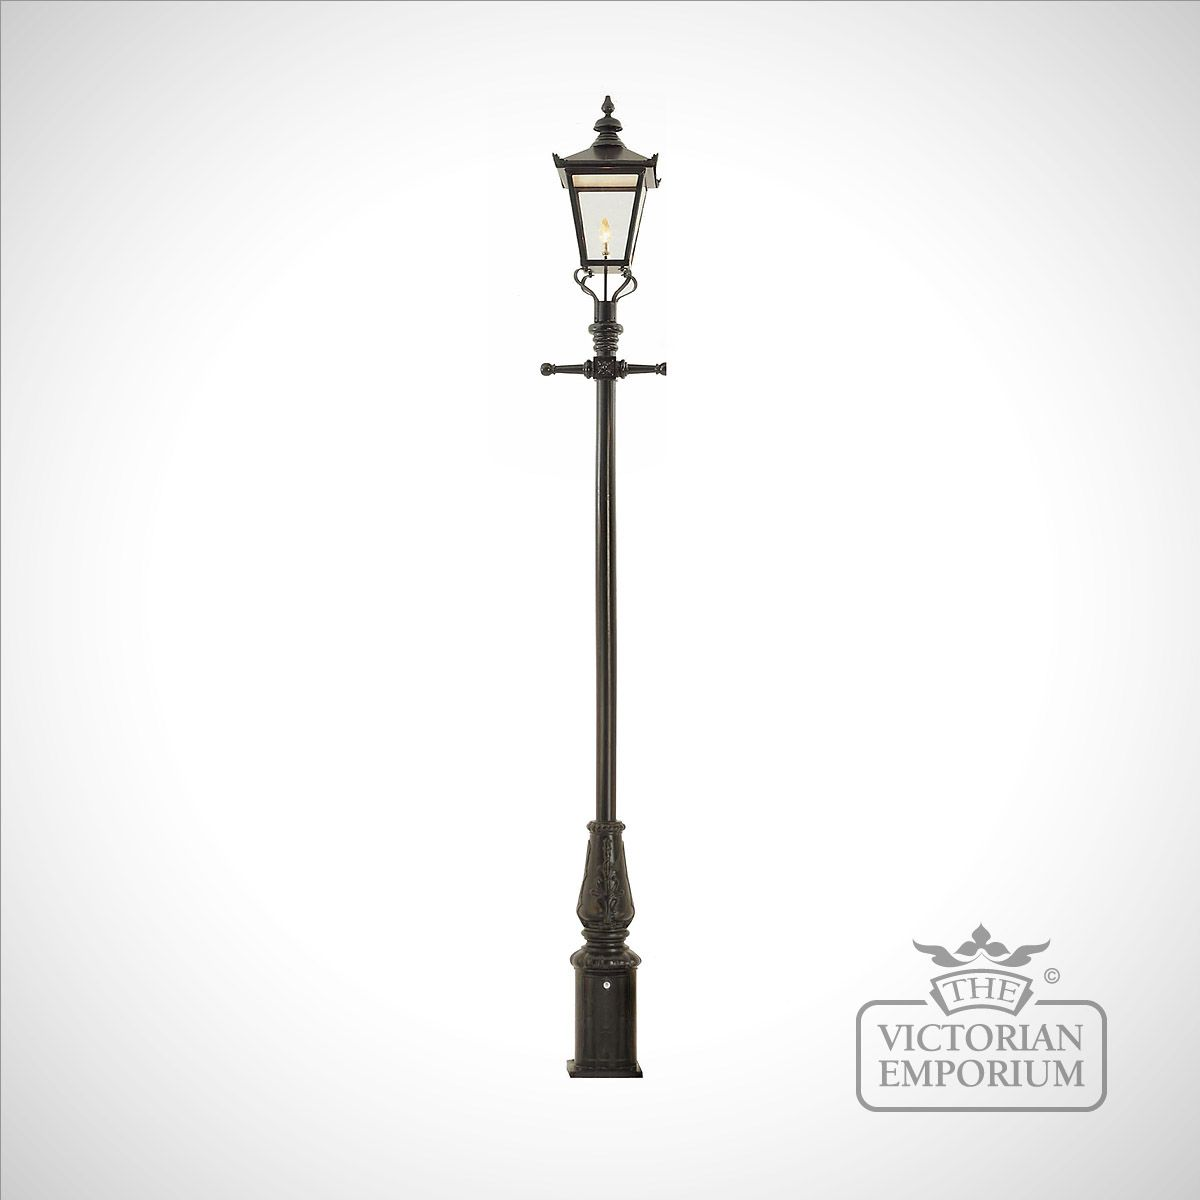 Lamp Post (style 5) And Large Square Stainless Steel Lantern